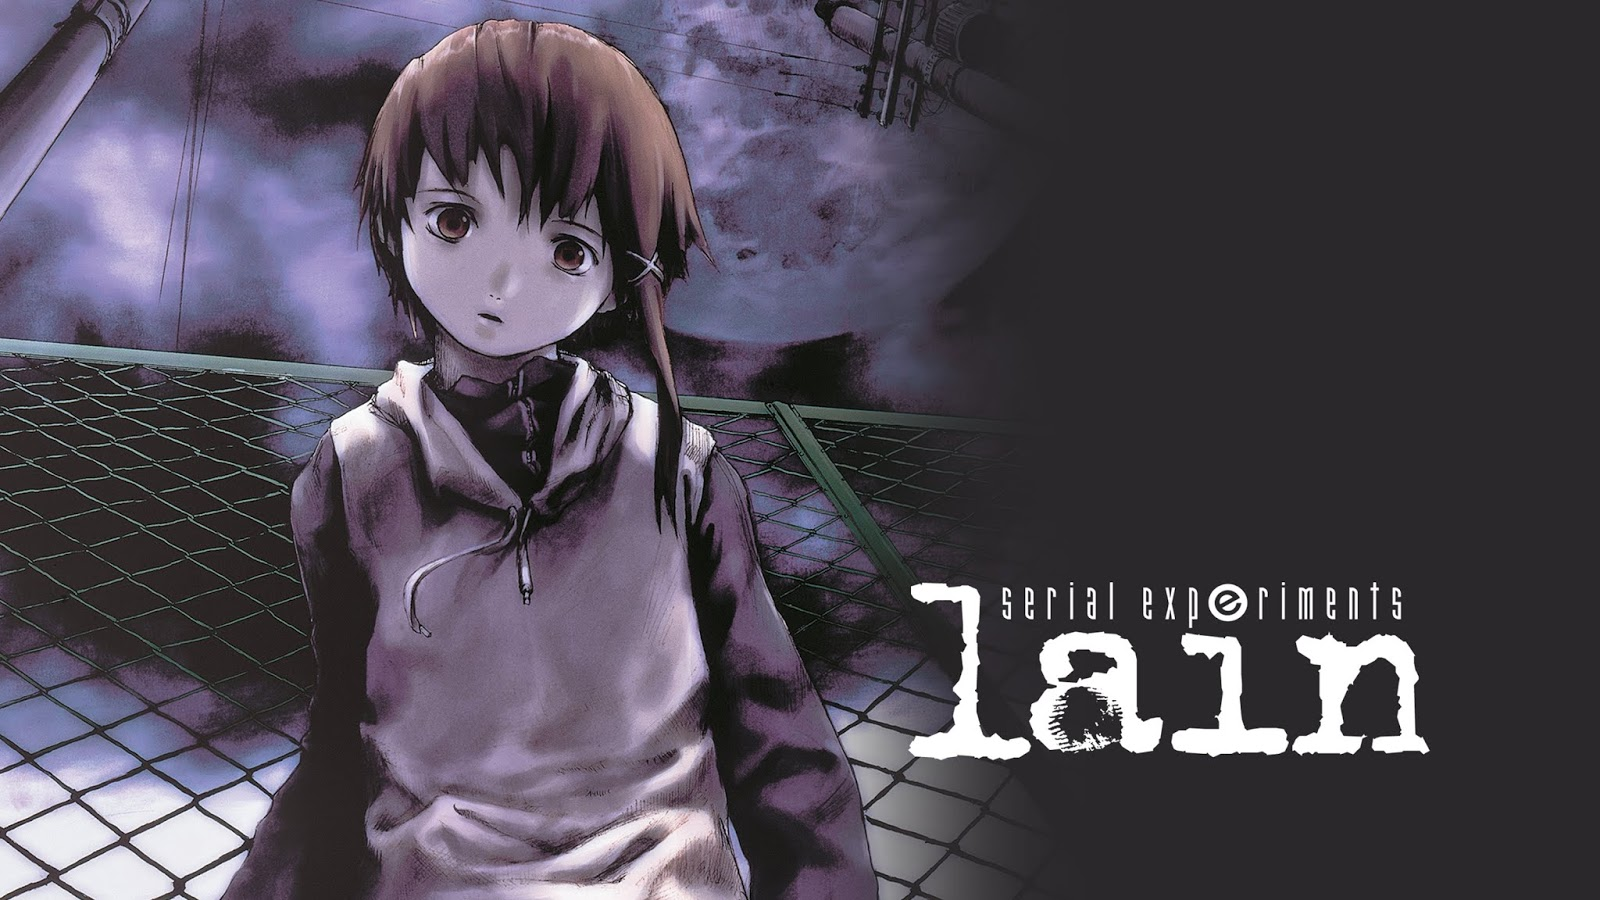 Serial Experiments Lain All Episodes 1080p Bd English